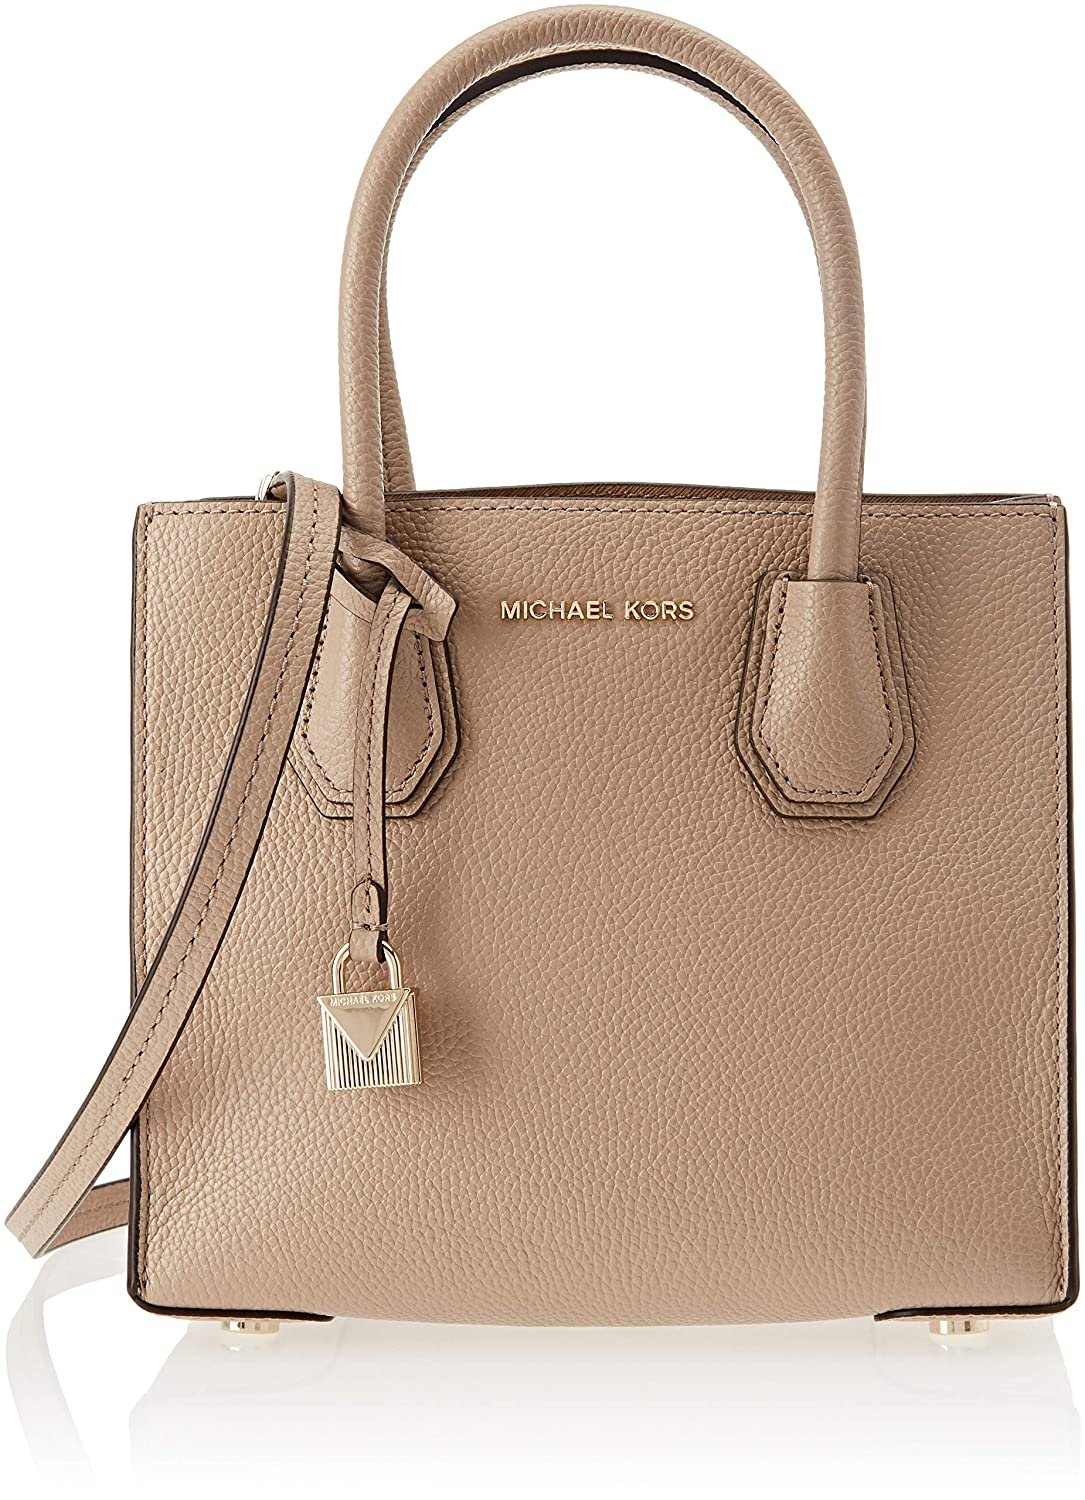 6edd64043d64 Michael Kors Womens Mercer Tote Beige (TRUFFLE)  Handbags  Amazon.com